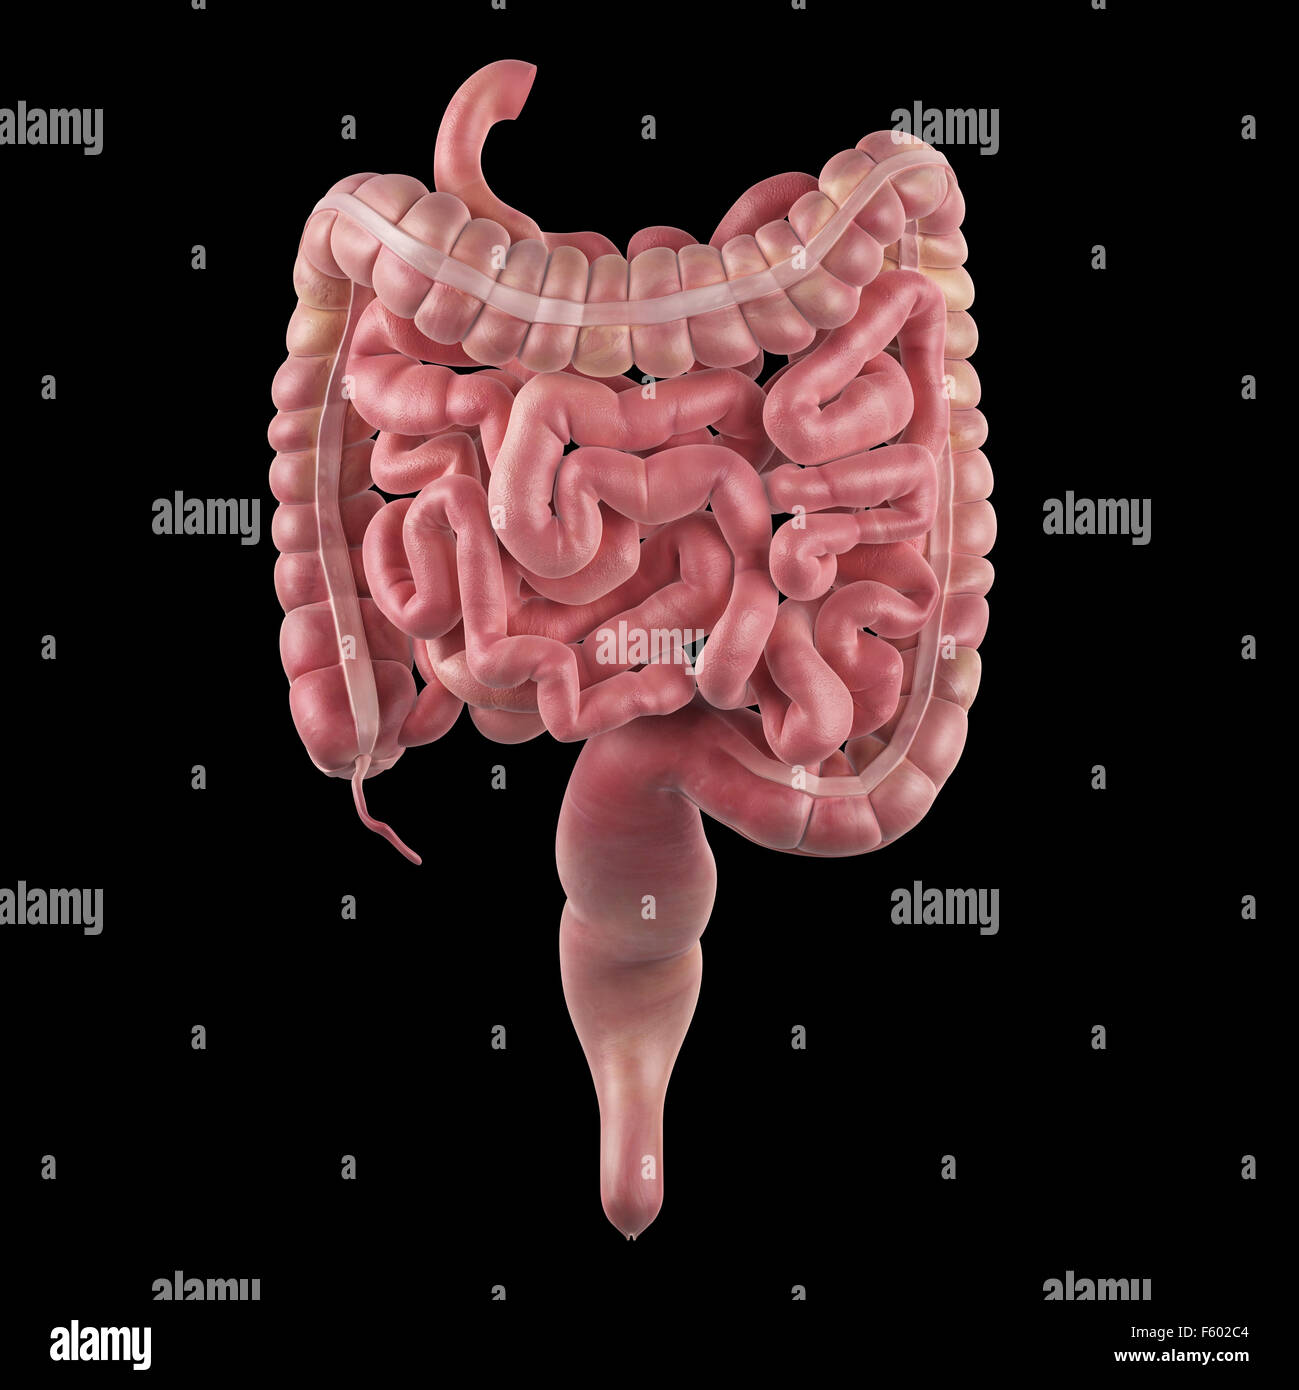 Medically Accurate Illustration Small Intestine Stock Photos